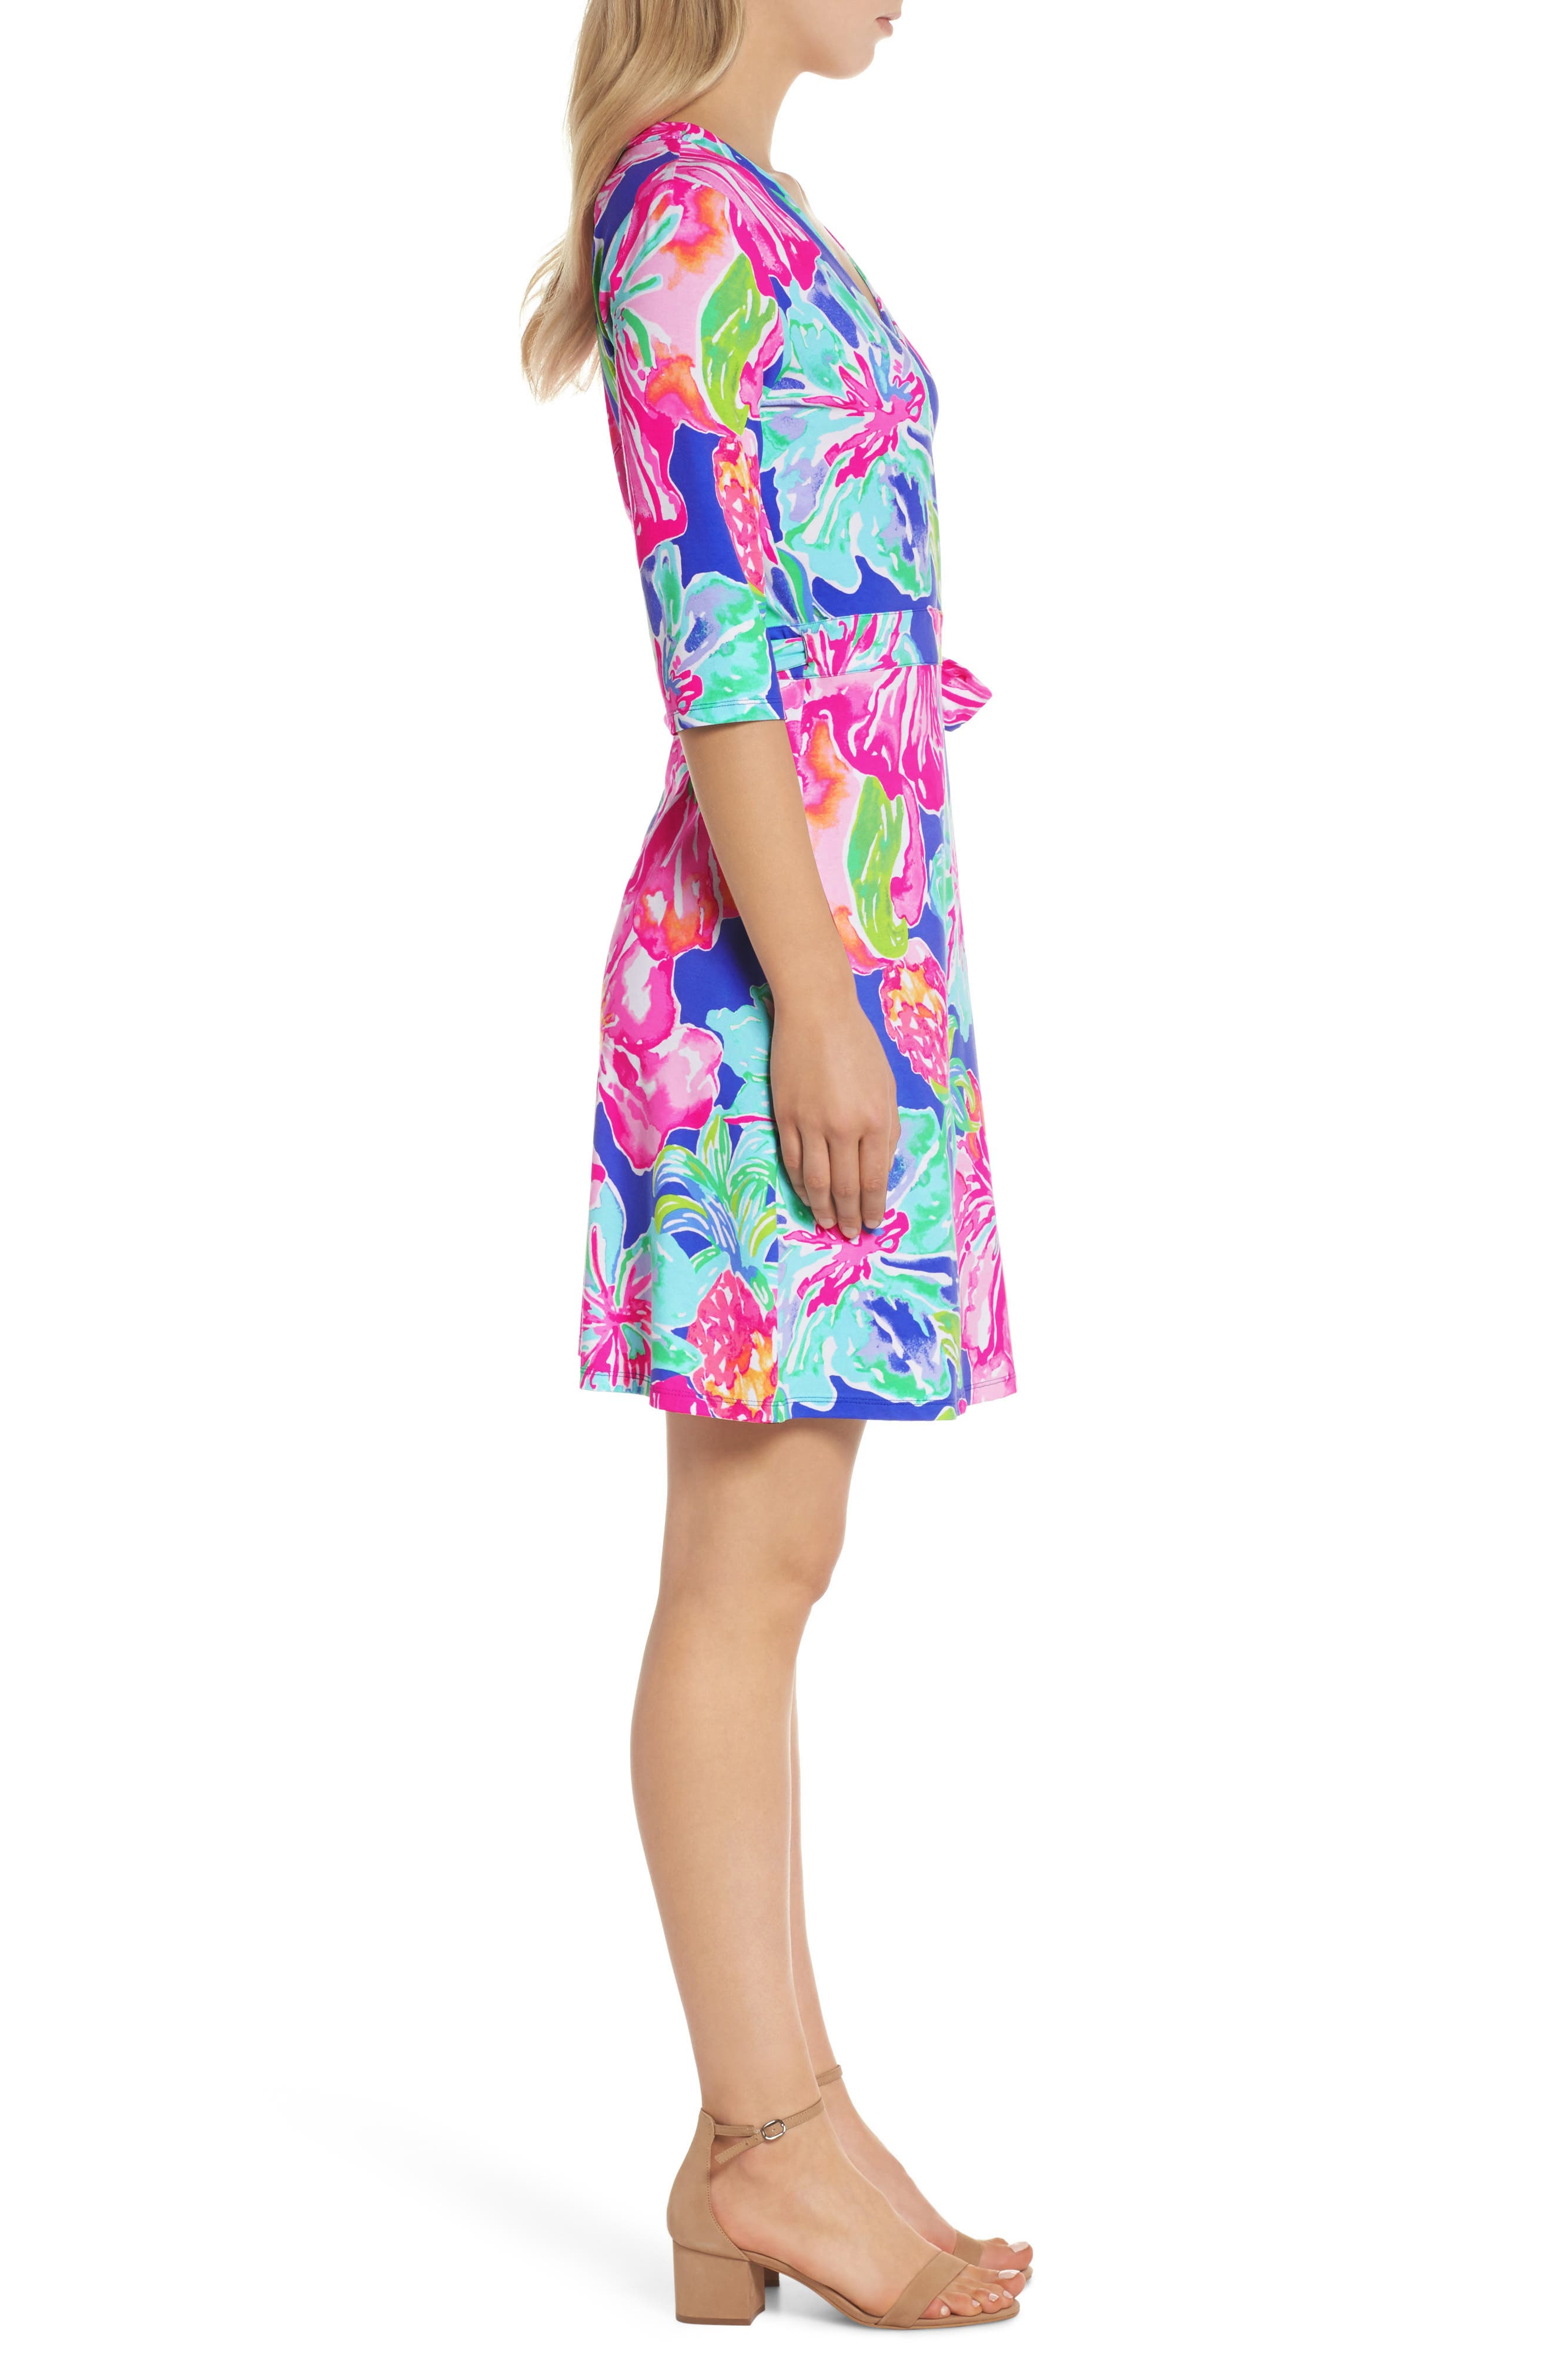 Marvista Wrap Dress,                             Alternate thumbnail 3, color,                             BECKON BLUE JUNGLE UTOPIA